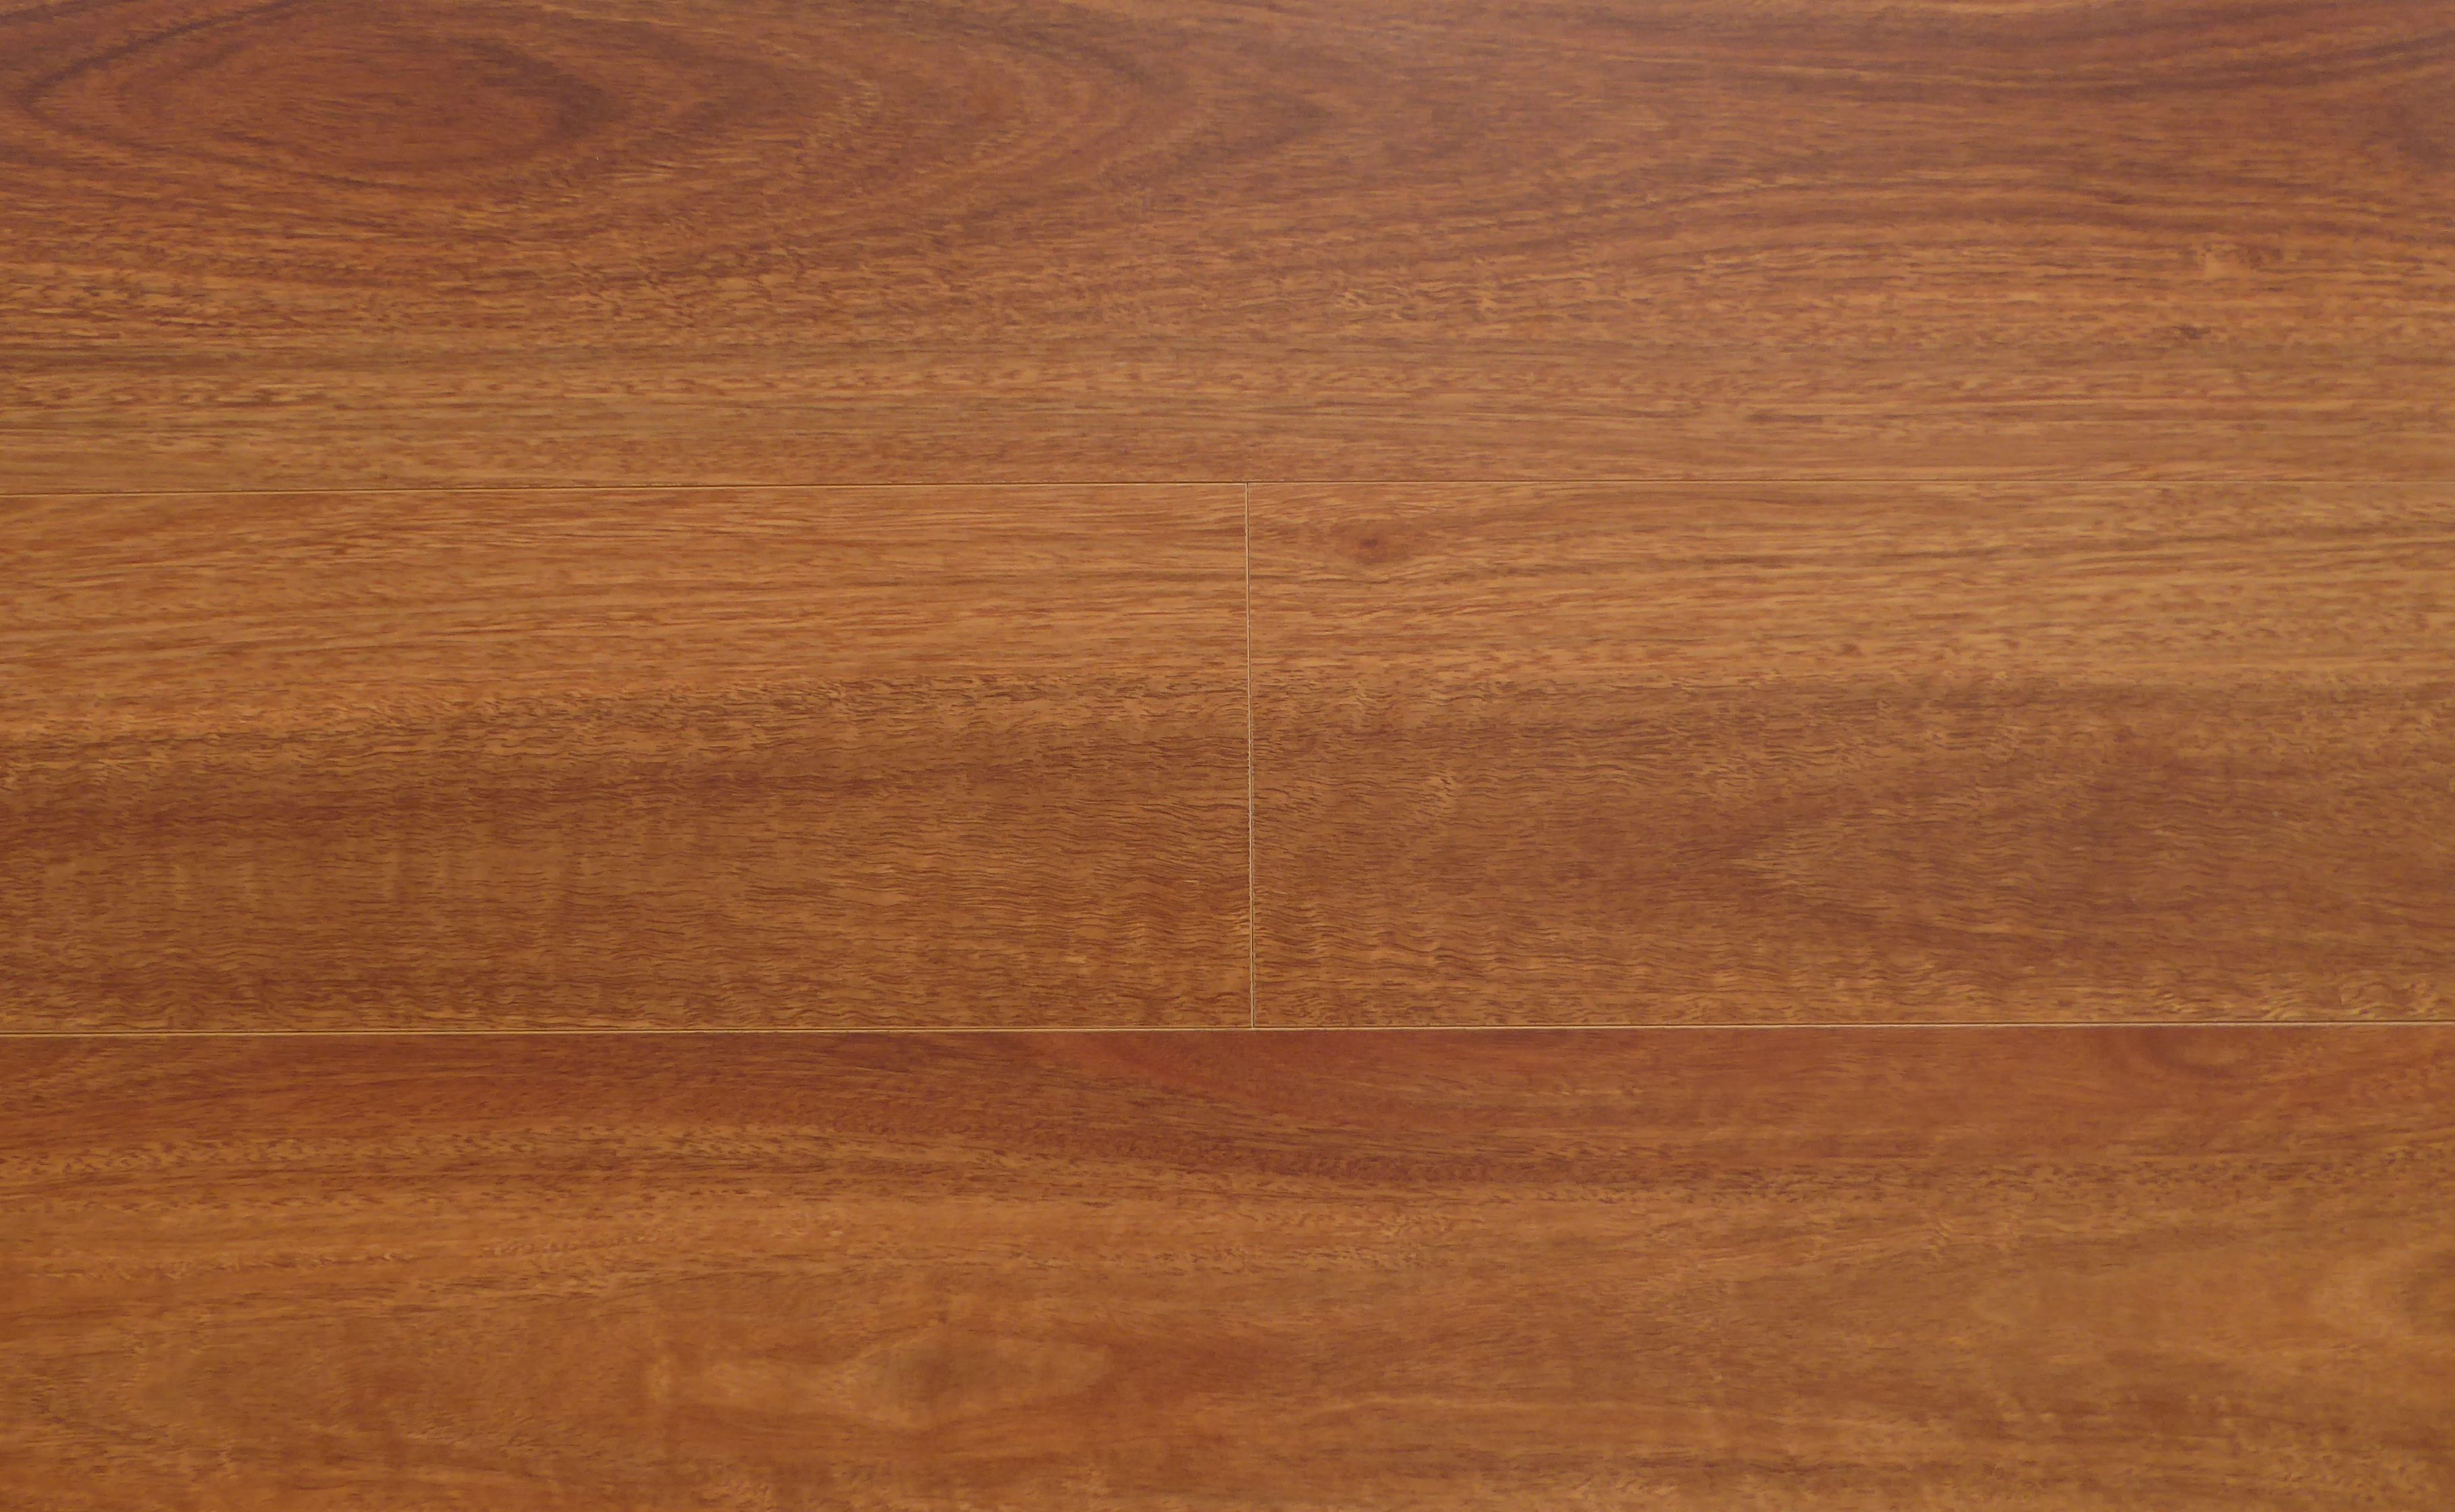 Qi Floor Spotted Gum Ausquare Timber Floors